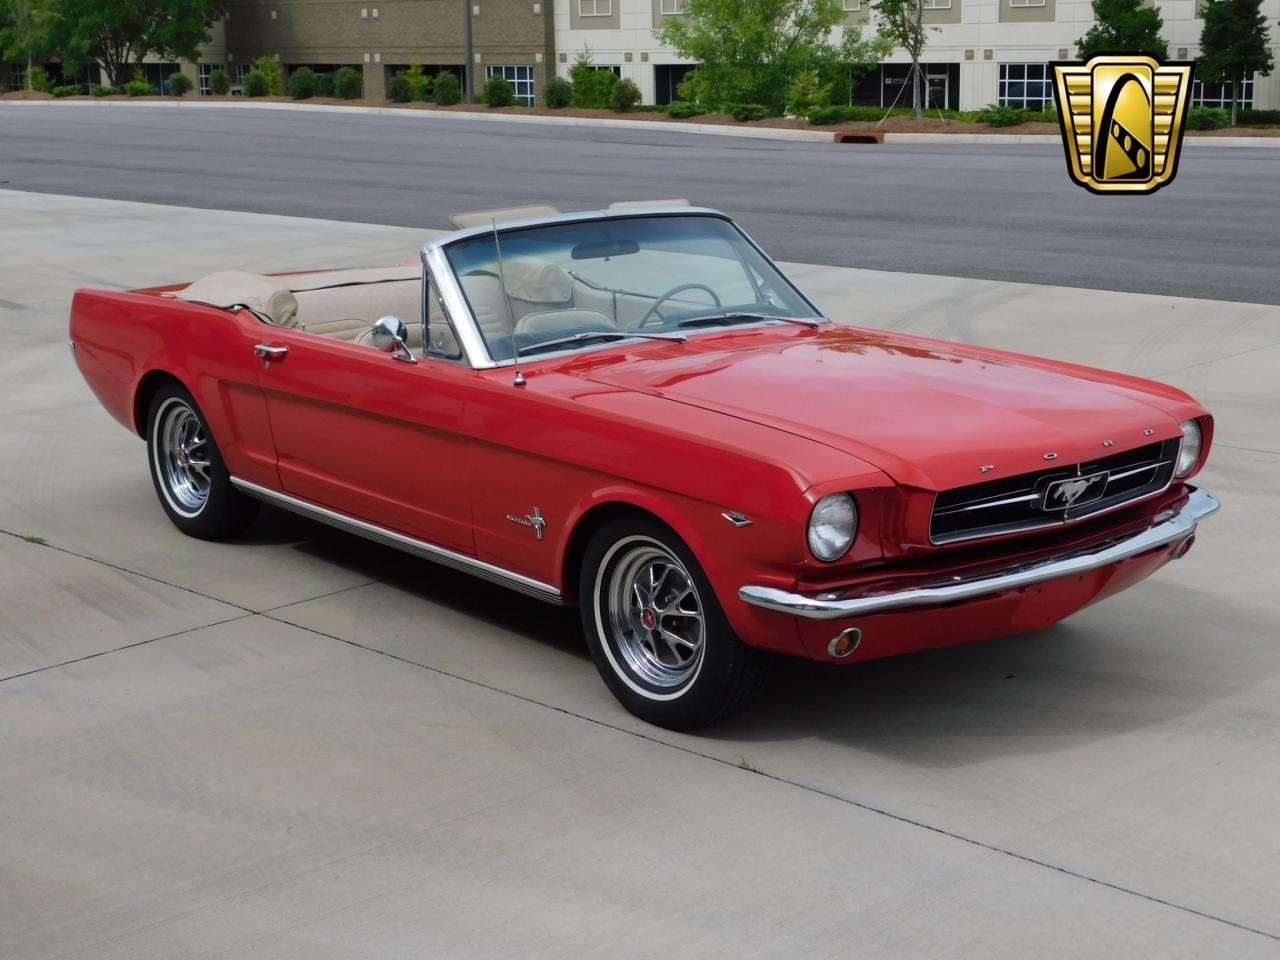 Large Picture of Classic 1965 Ford Mustang located in Alpharetta Georgia - LDV2